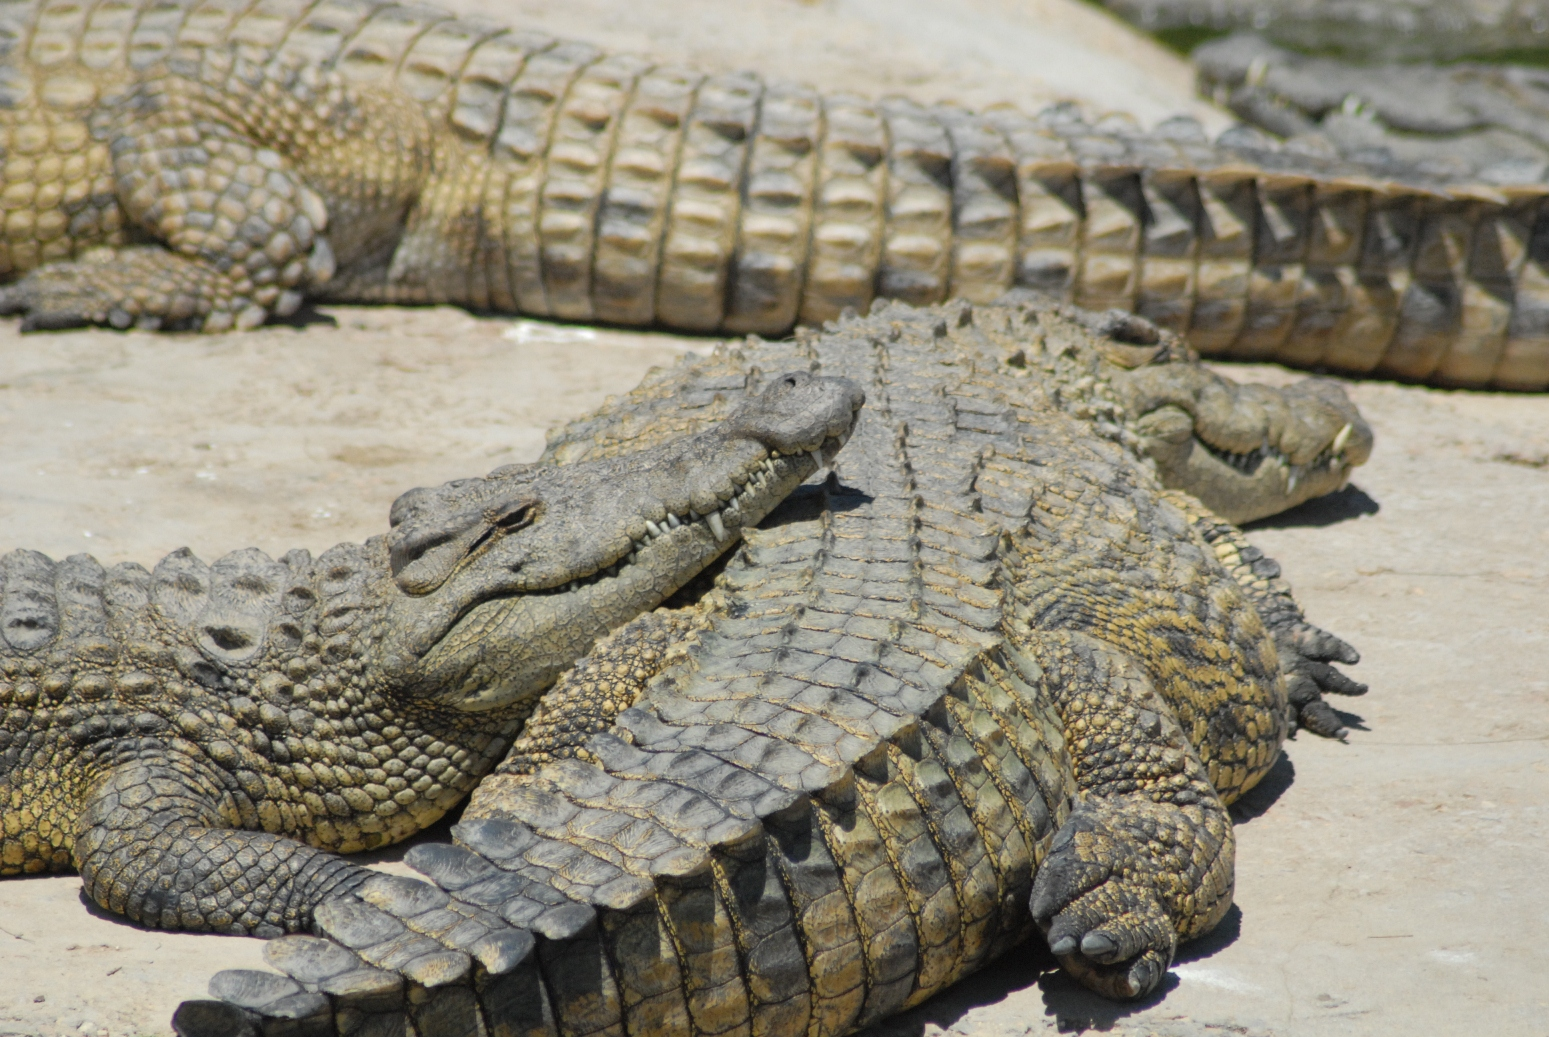 Crocodile close up